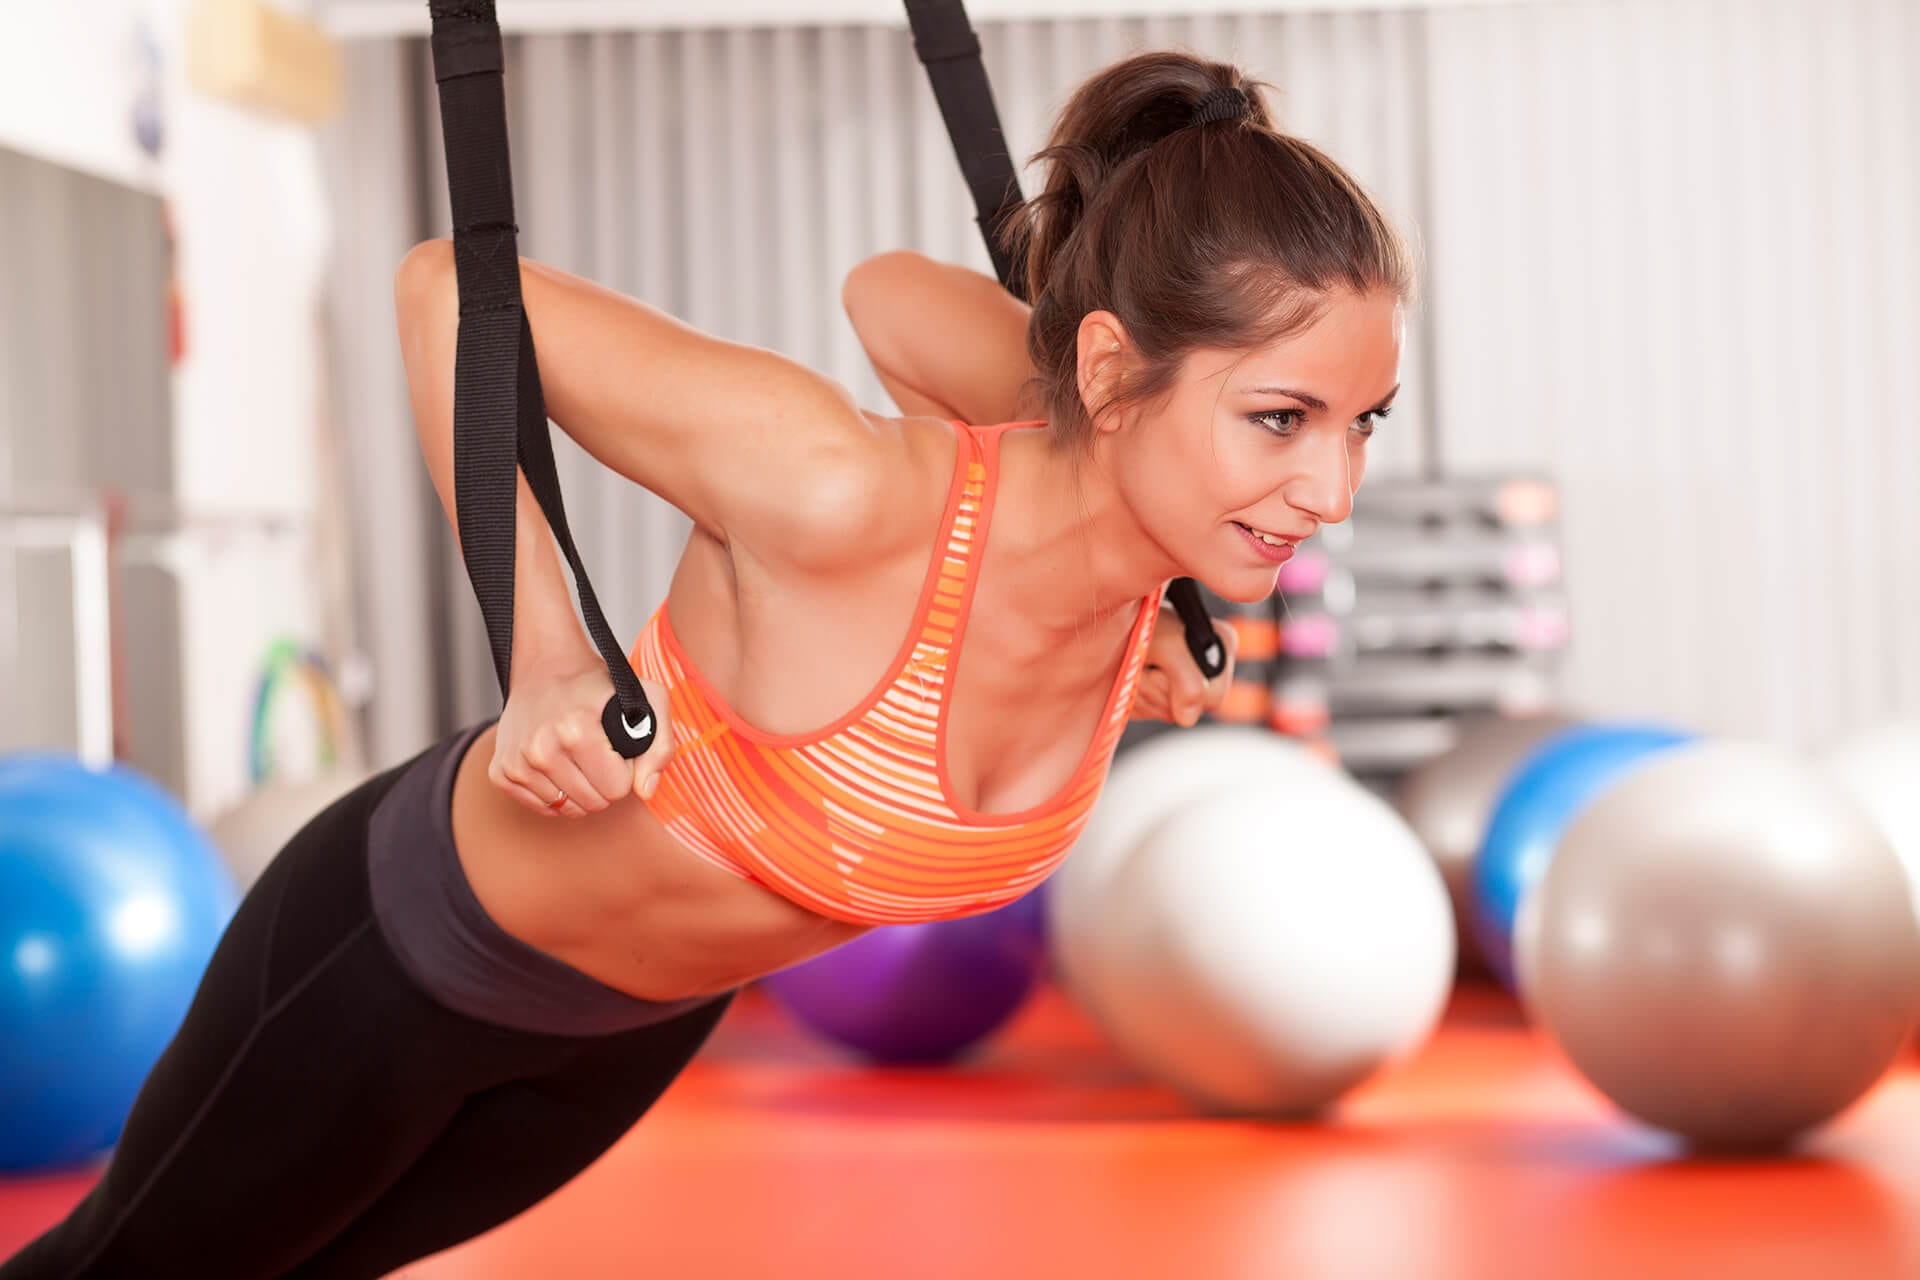 Female at a diagonal angle practising Pilates exercises with hanging band